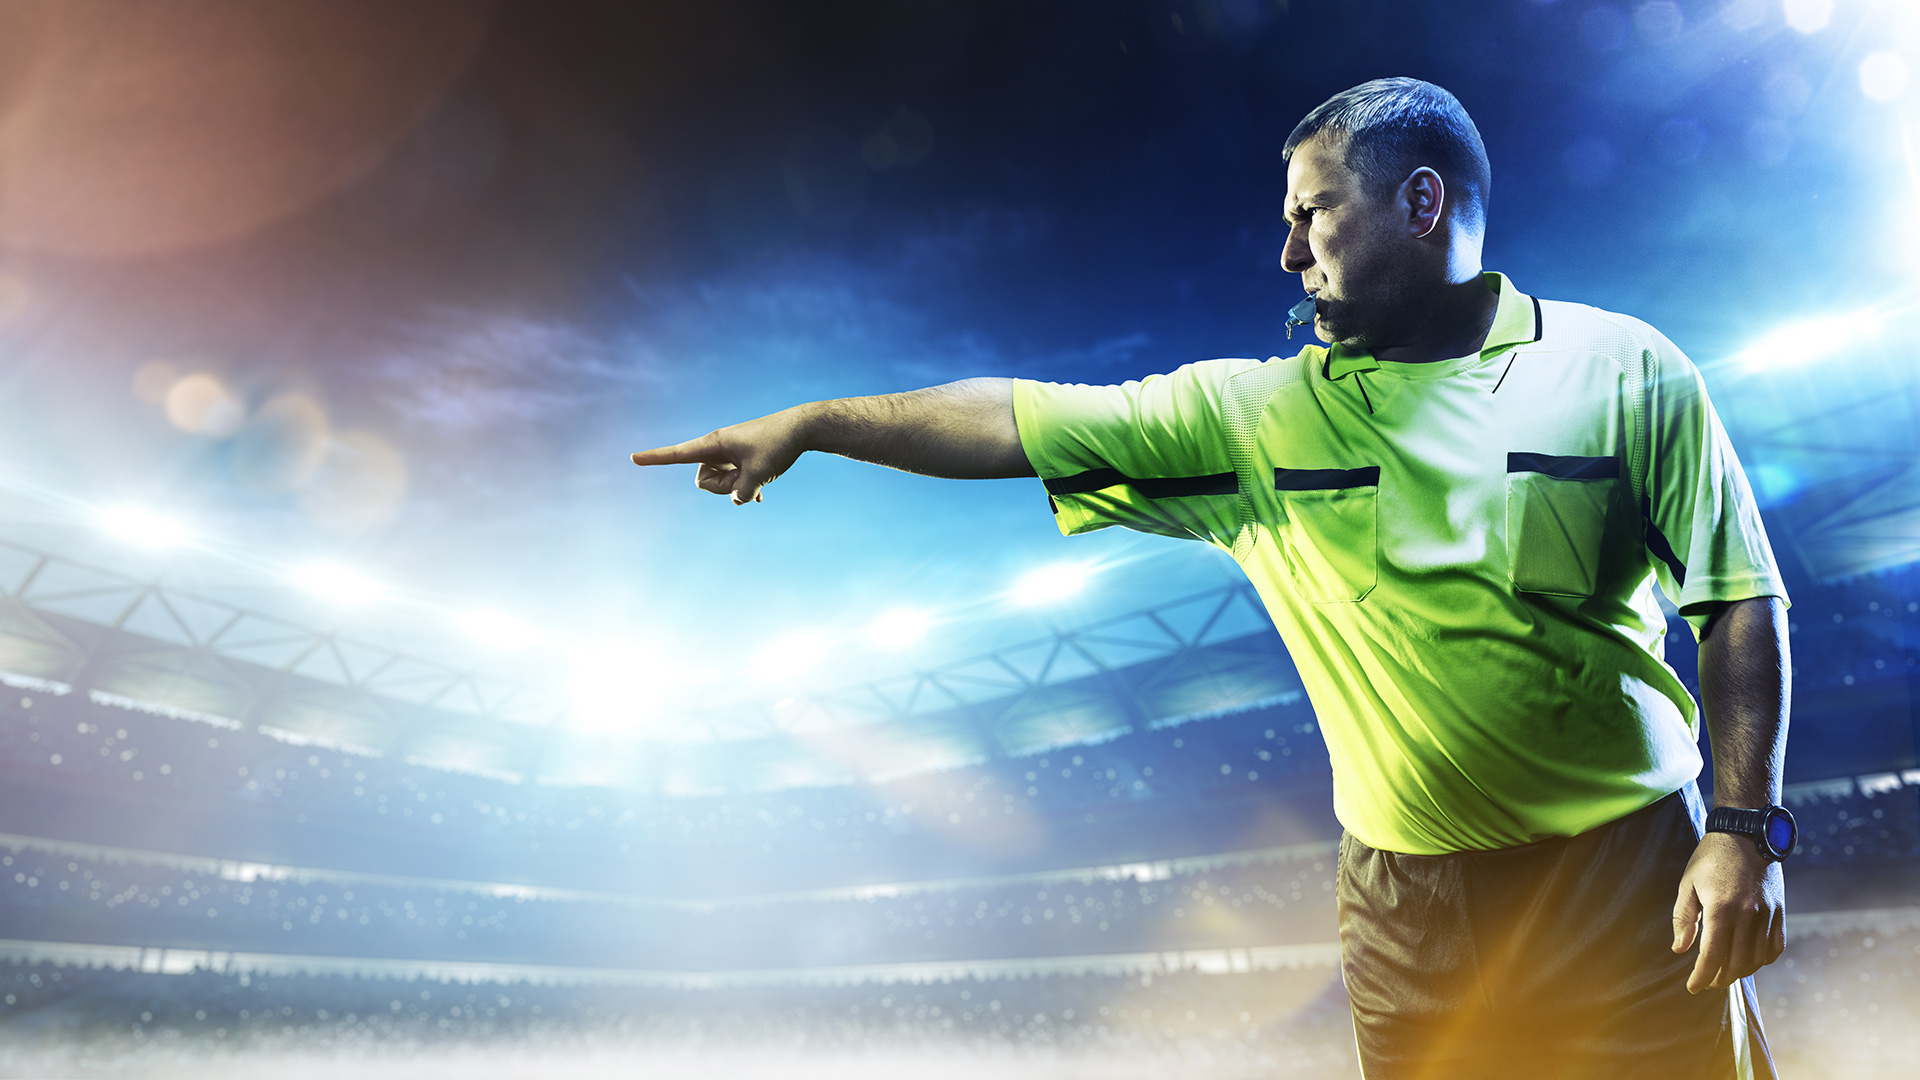 Sports referee pointing and whistling